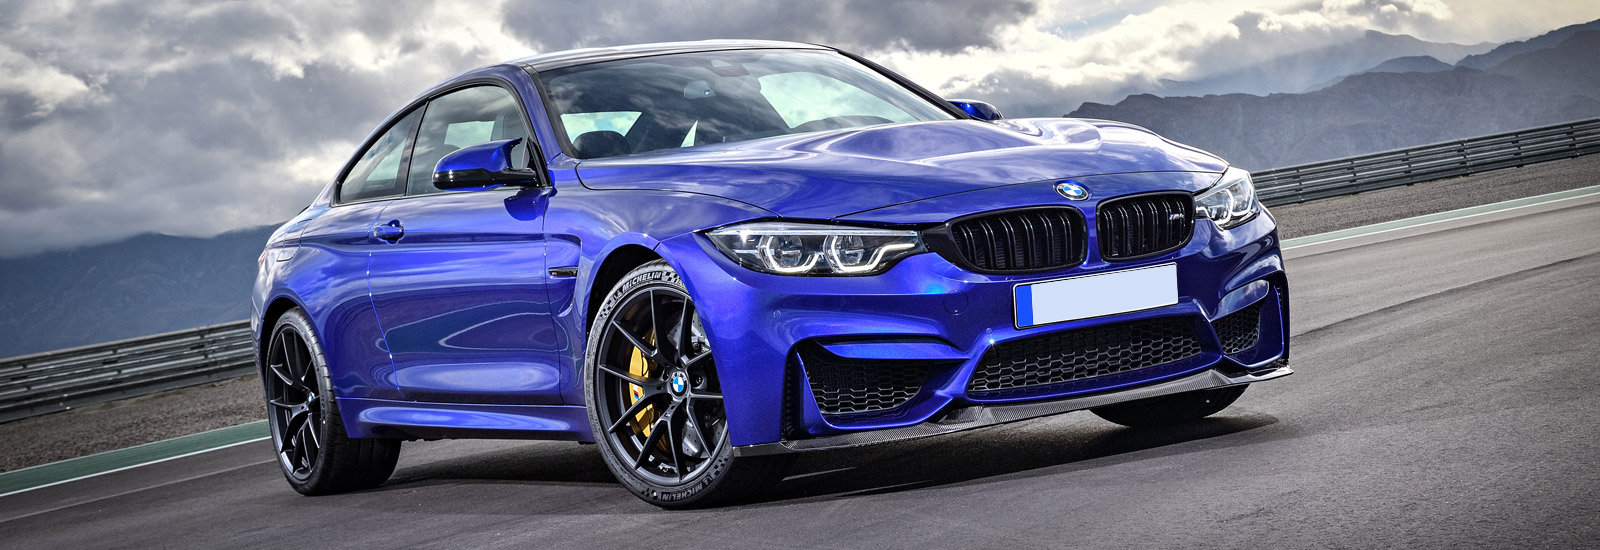 2017 bmw m4 cs price  specs and release date